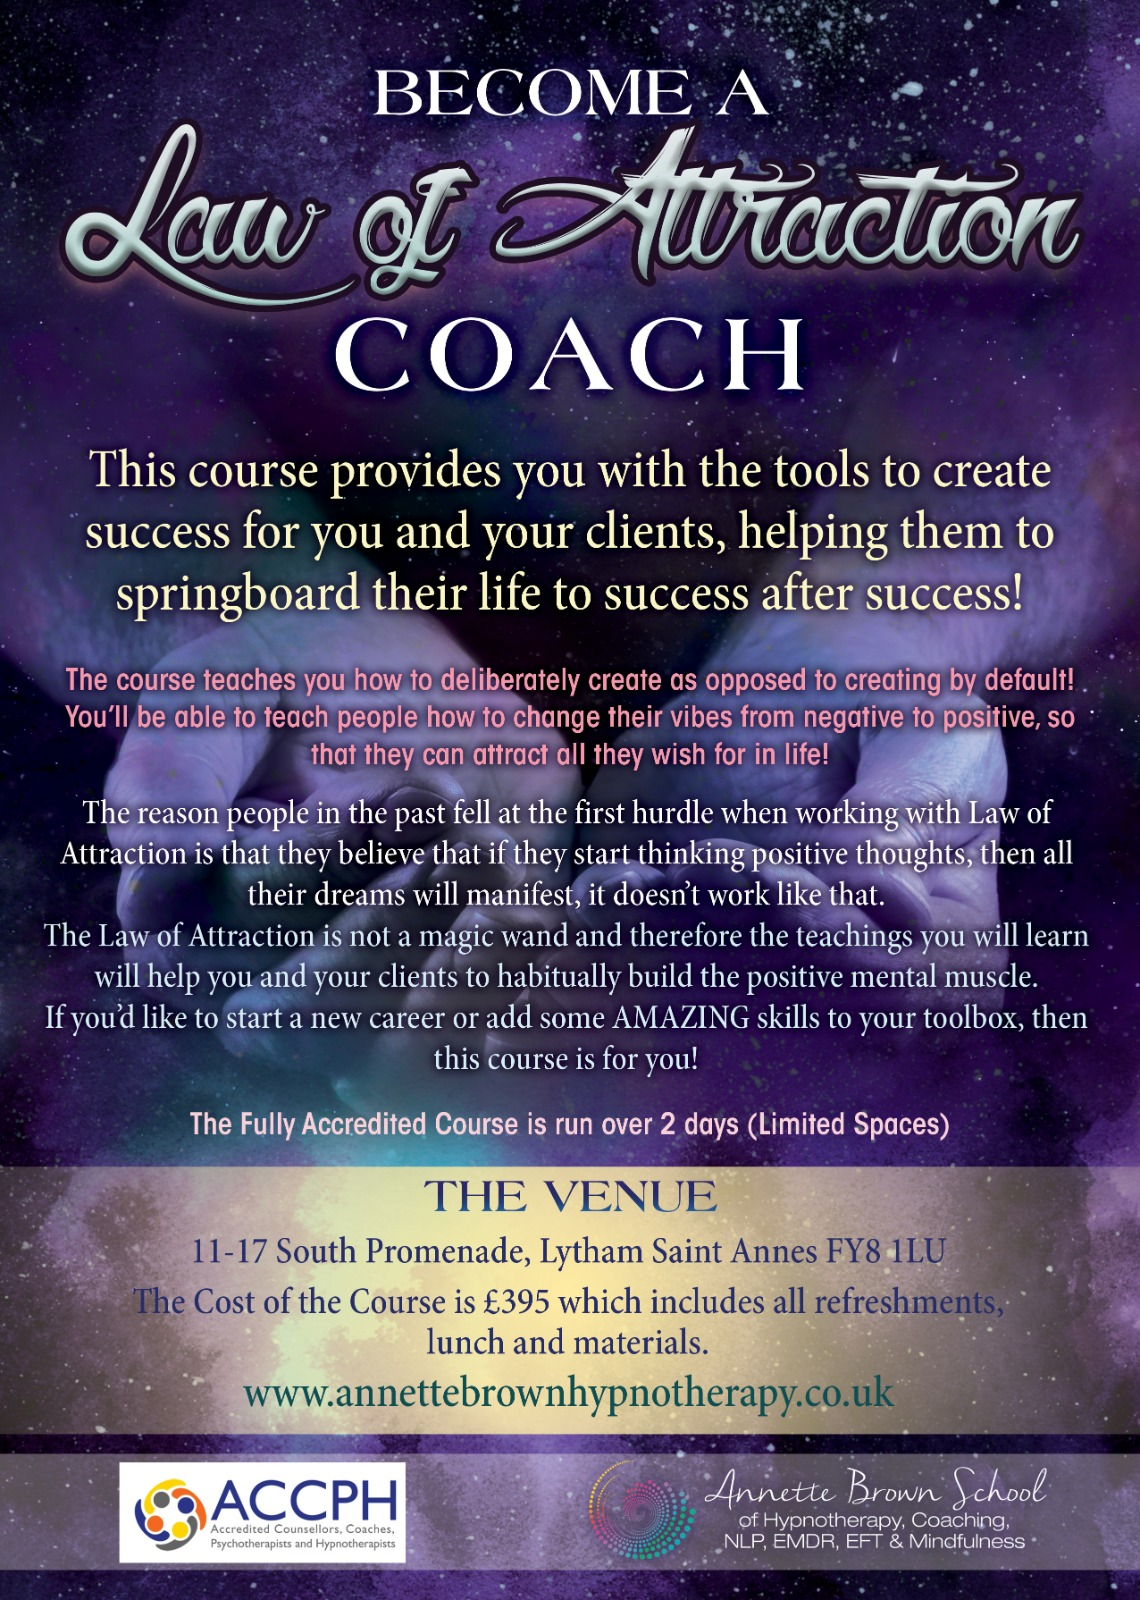 Law of Attraction Coaching Course (2 Day Course)